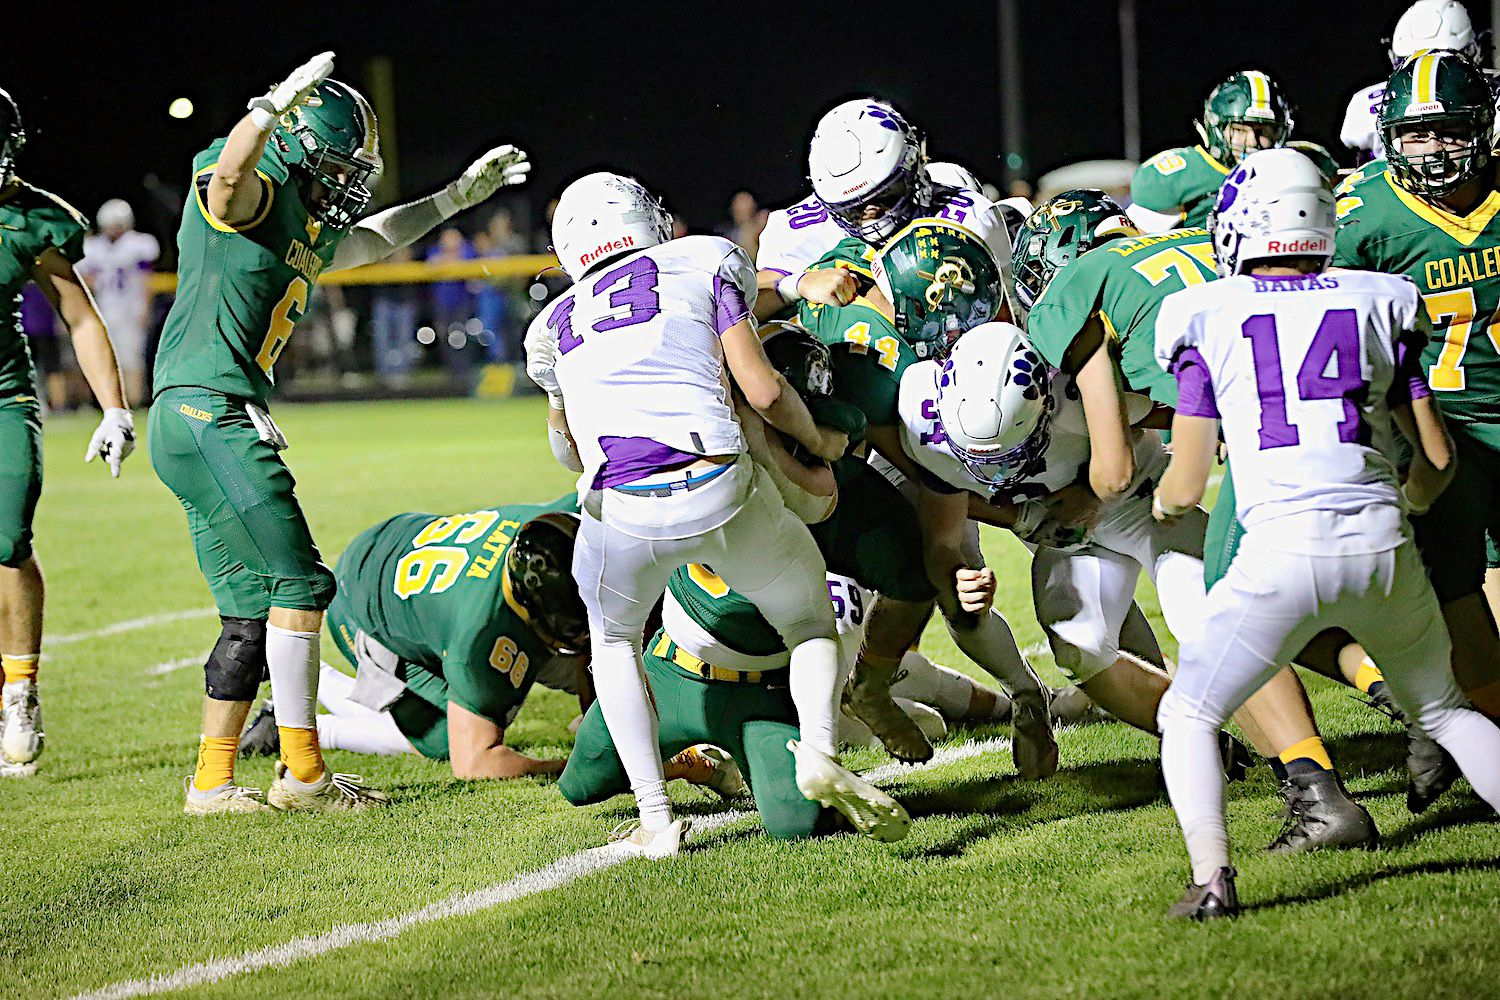 Coal City's Ashton Harvey (44) scores the Coalers' lone touchdown Friday night in a 10-7 loss to Wilmington.